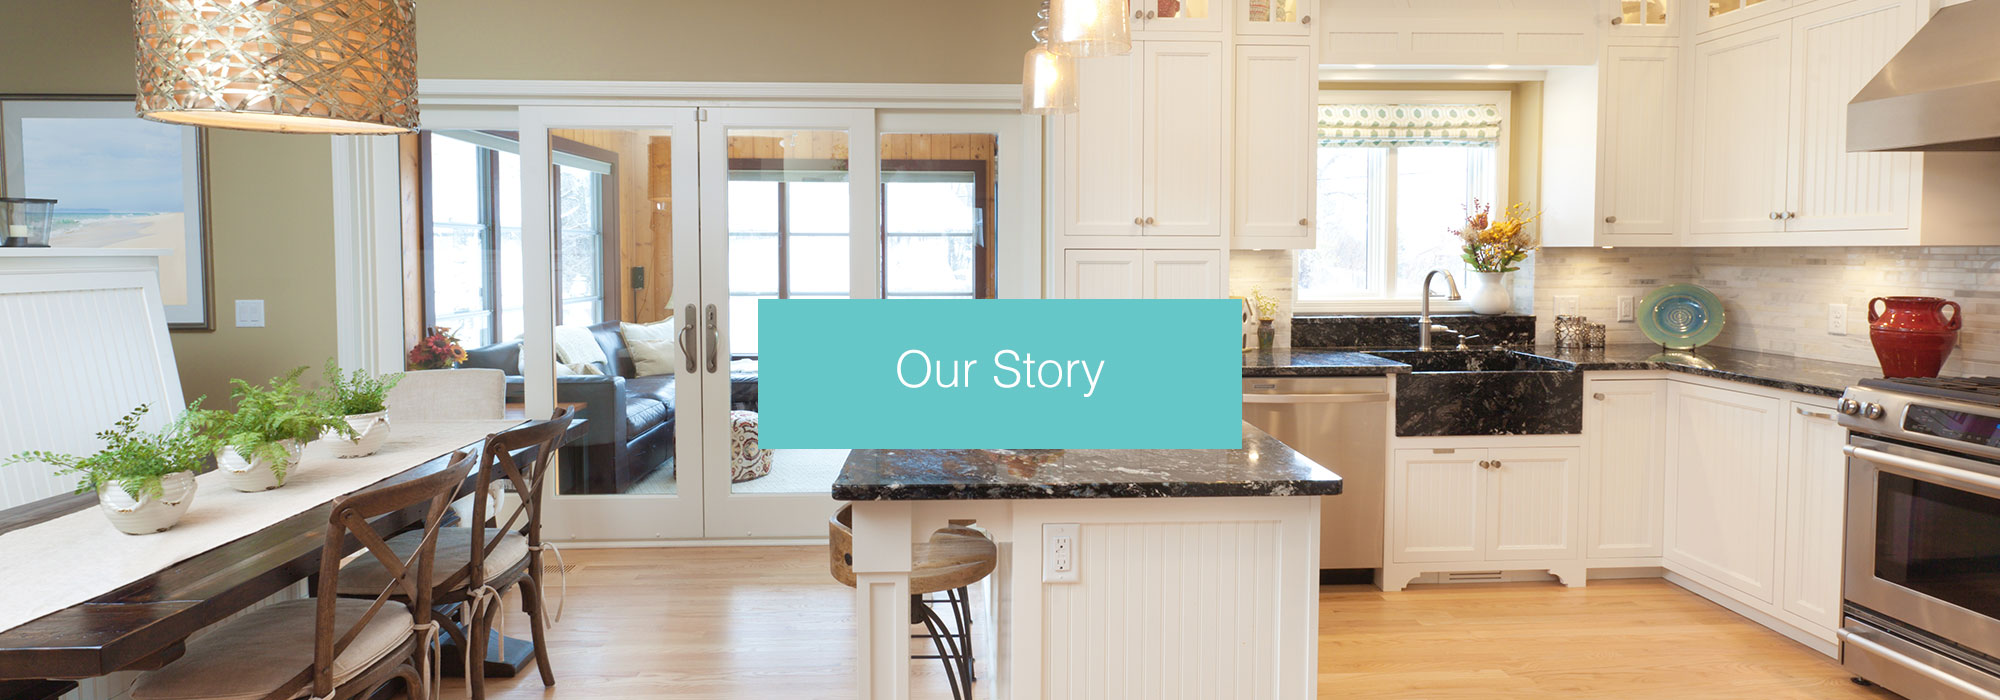 Kitchen & Bath Galleries - Our Story | Kitchen & Bath Galleries